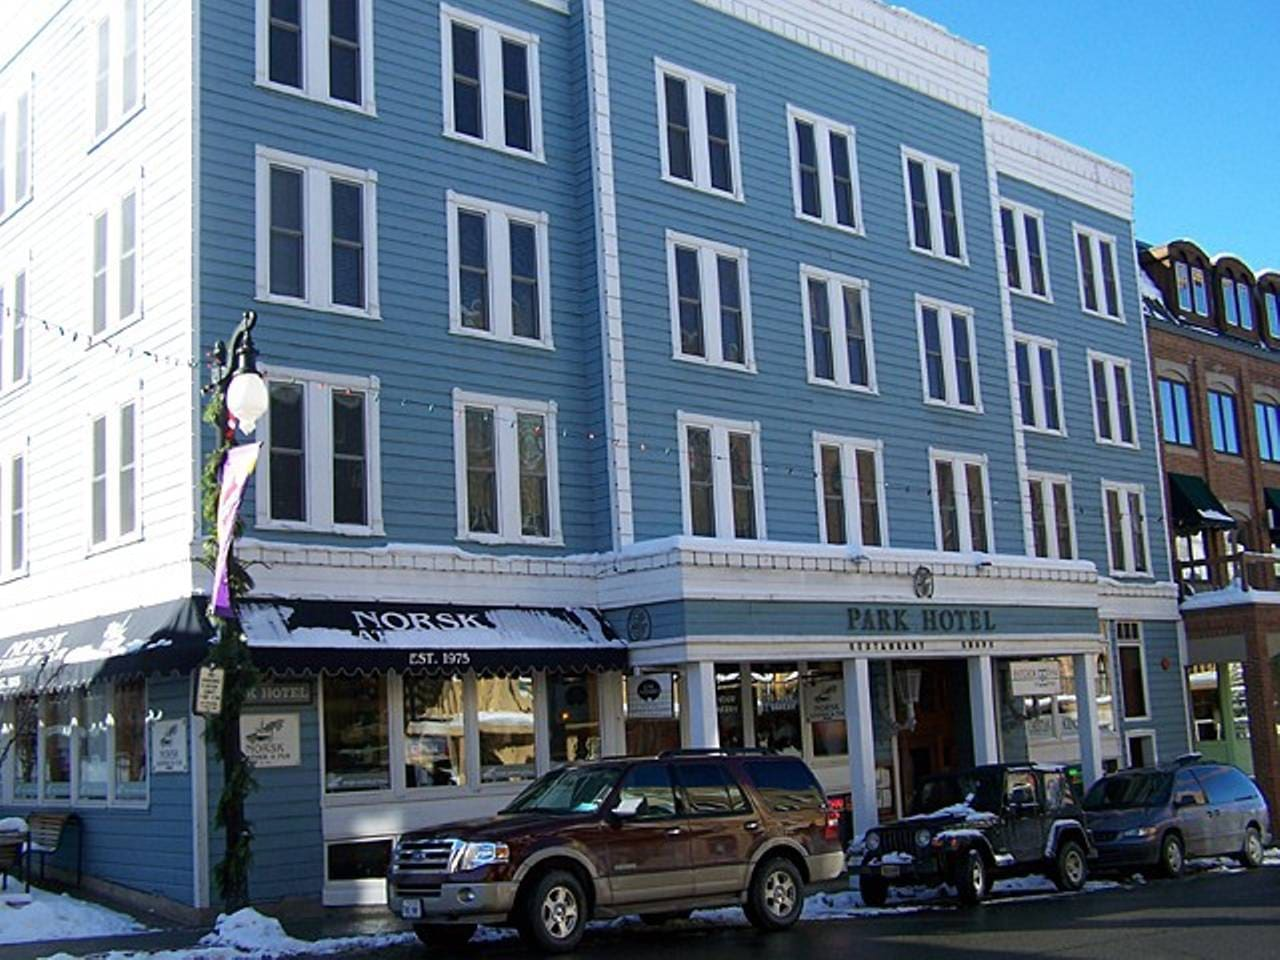 Park Hotel in the heart of Main Street, Park City Utah